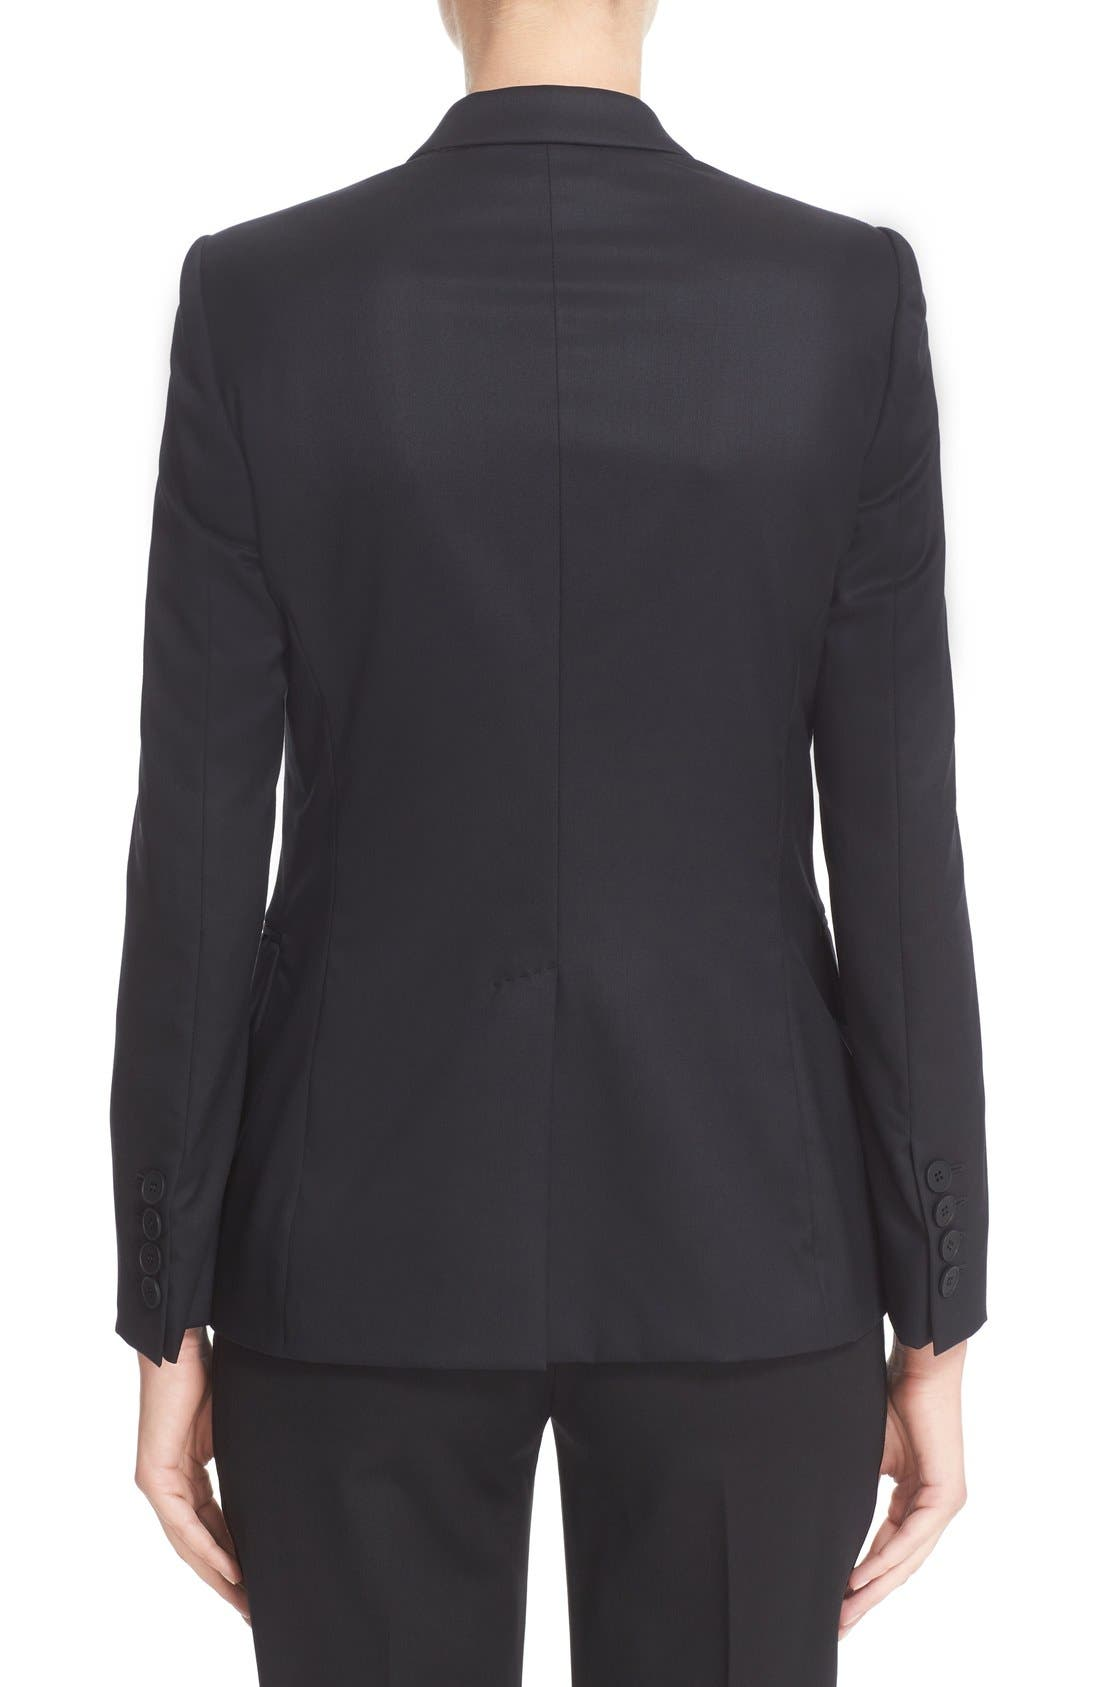 Alternate Image 2  - Stella McCartney PS1 One-Button Wool Jacket (Nordstrom Exclusive)